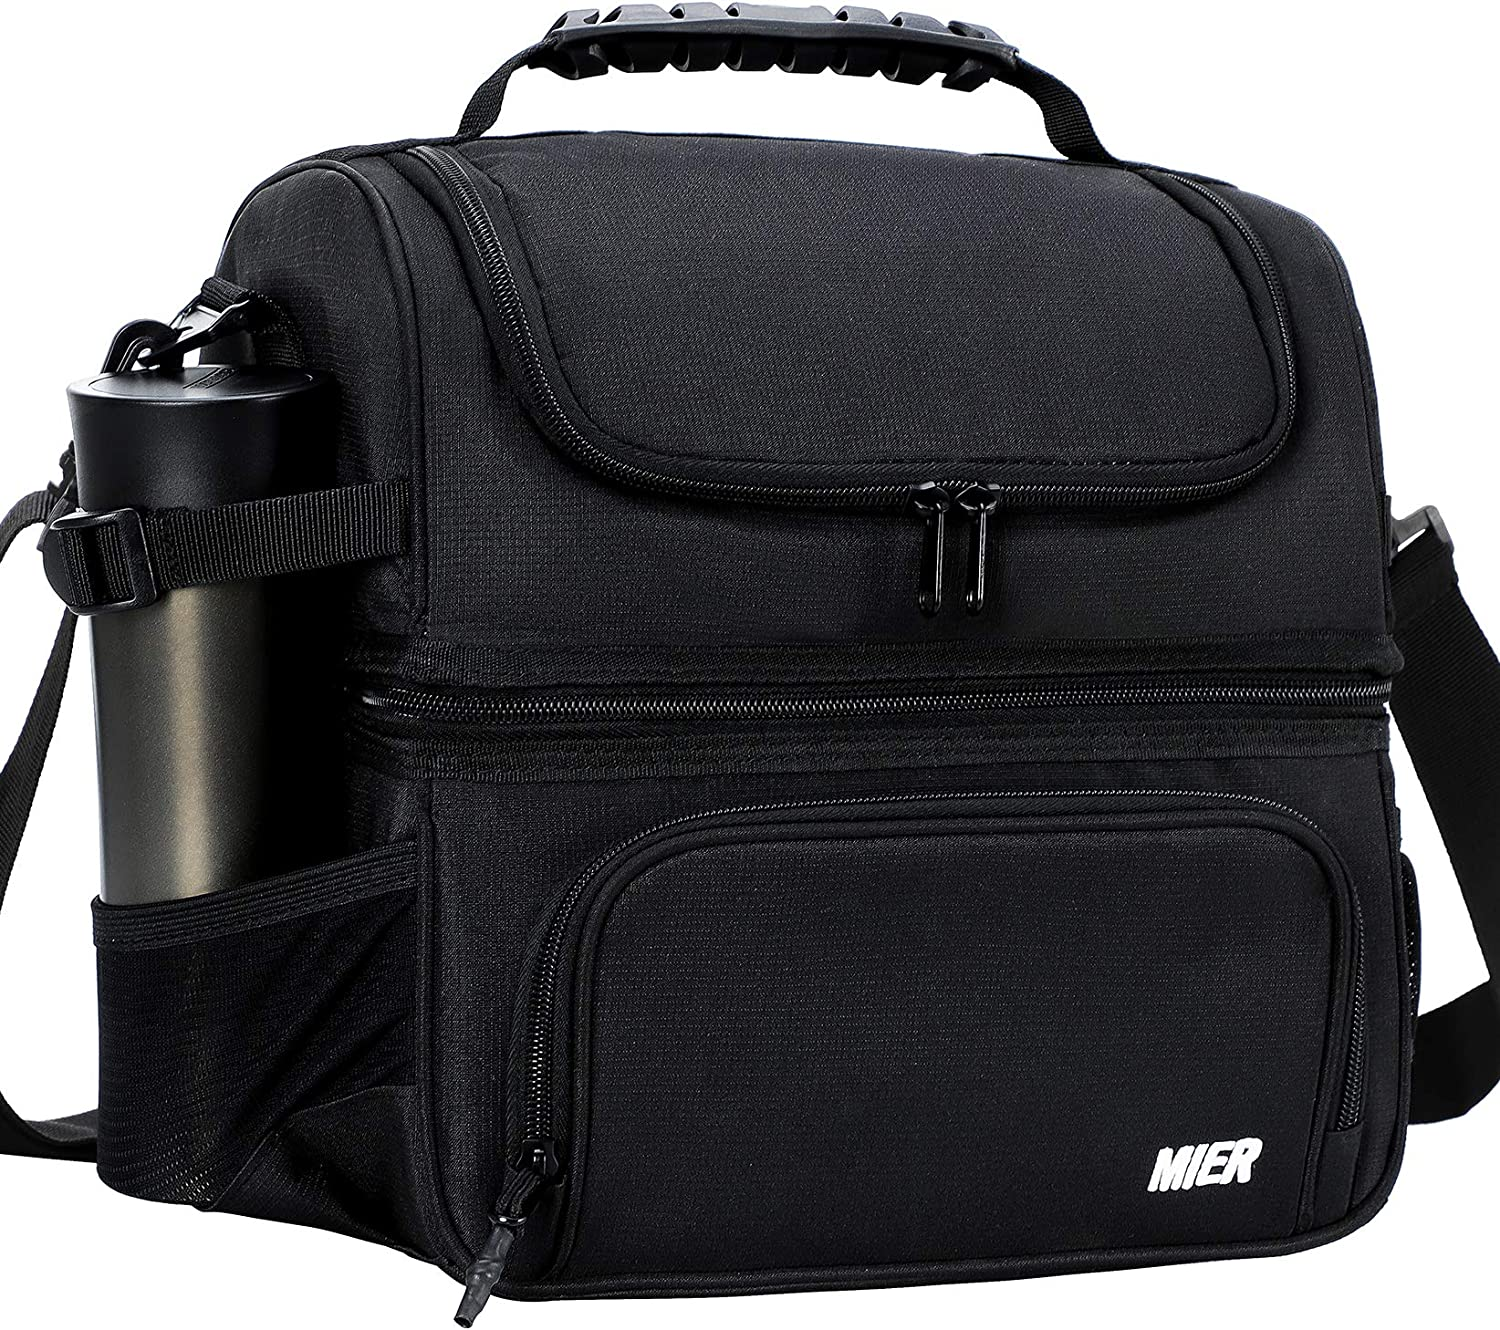 MIER Dual Compartment Lunch Bag Tote with Shoulder Strap for Men and Women Insulated Leakproof Cooler Bag, Black